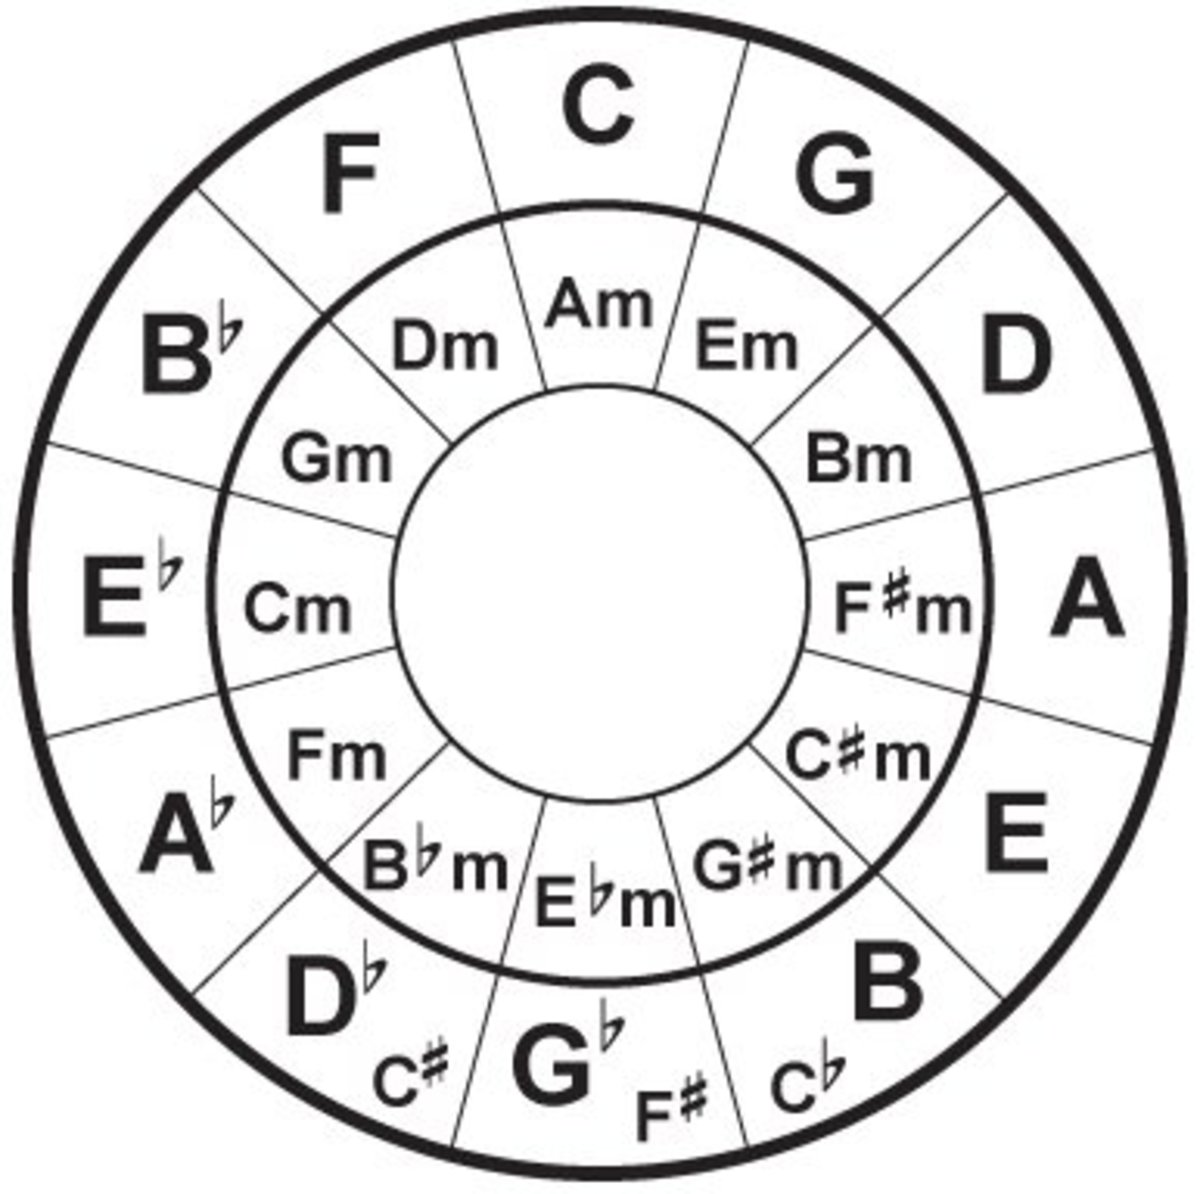 Easy Circle of Fifths Chords for R&B